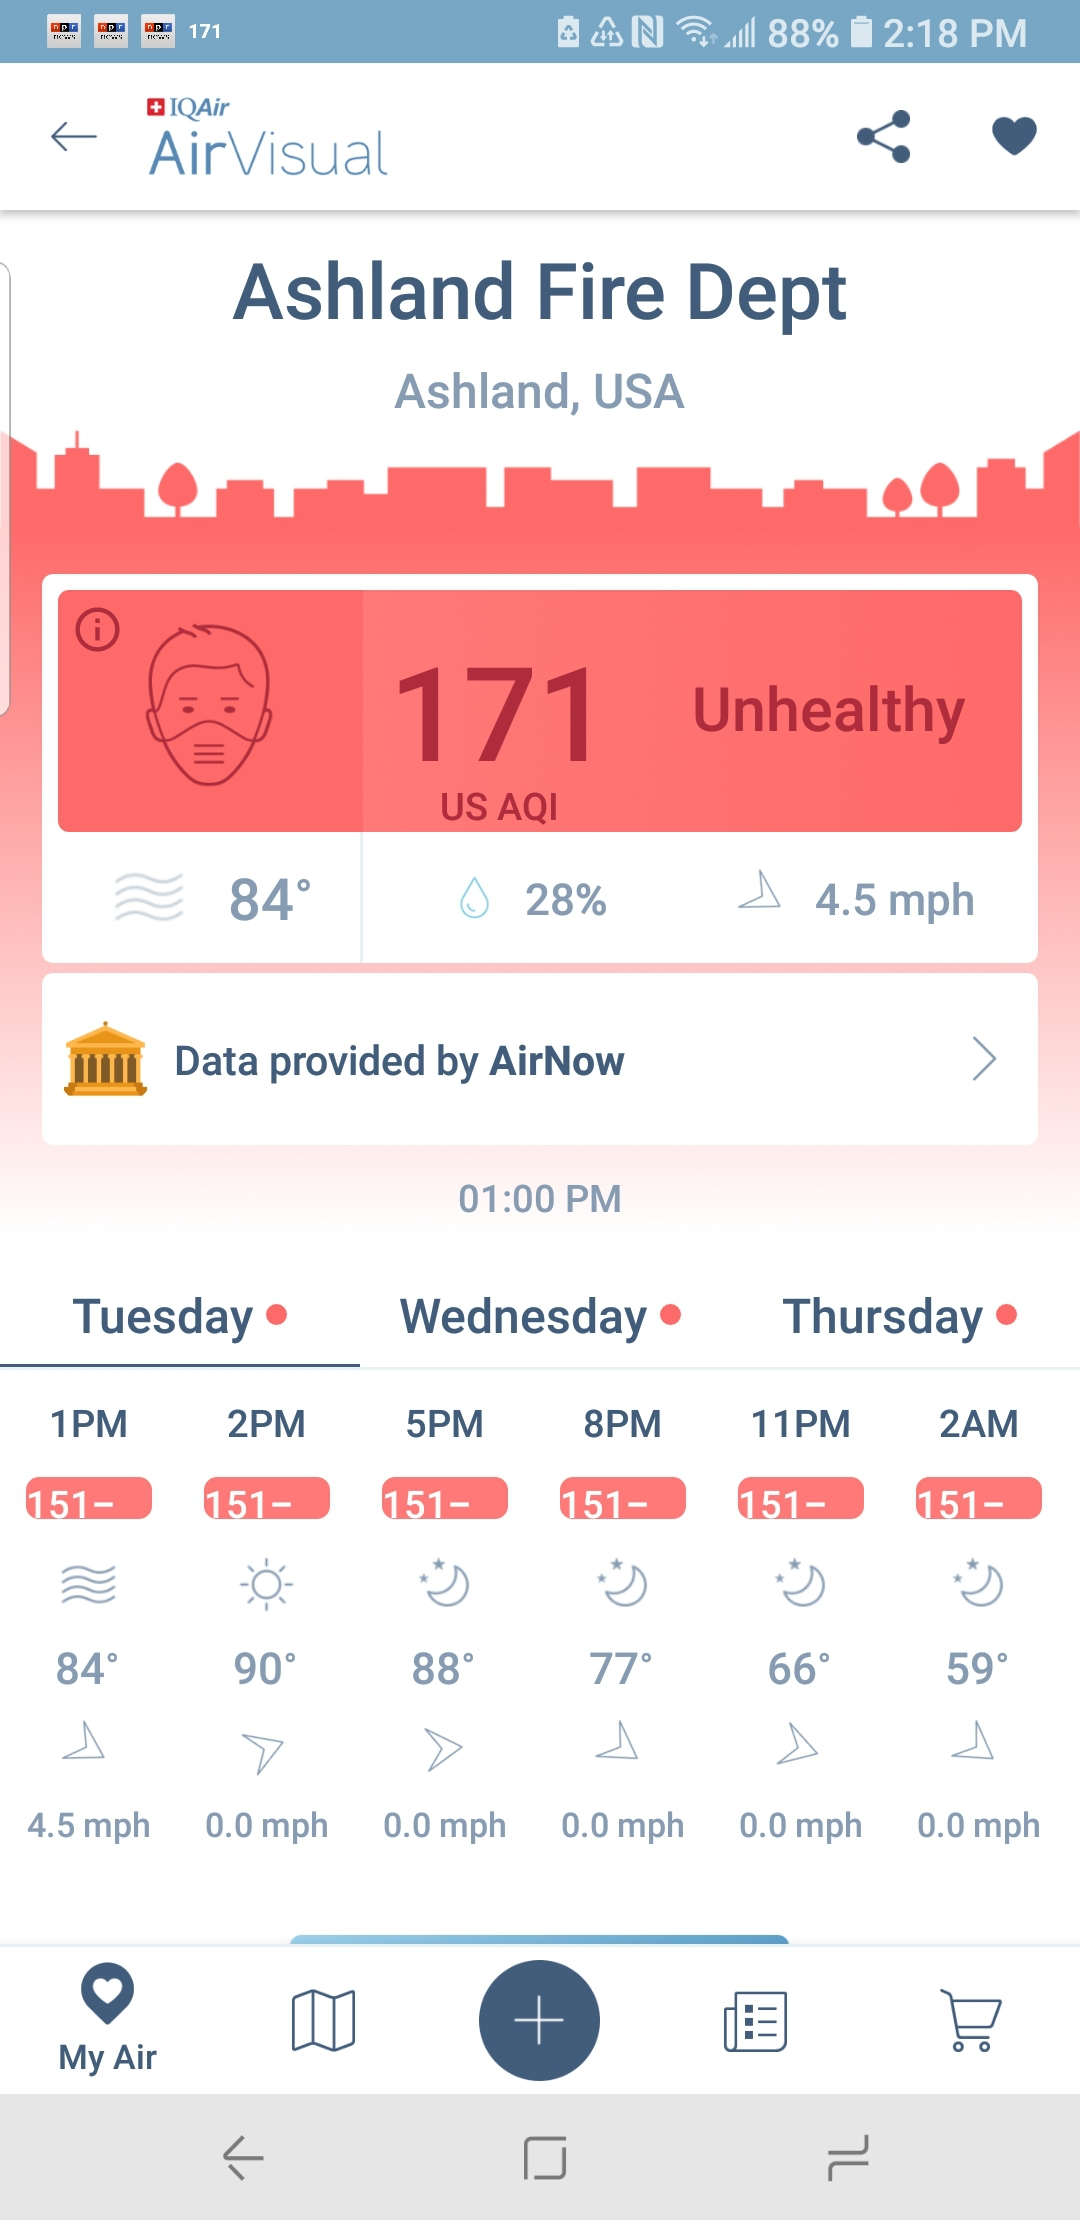 Unhealthy. - This has become a familiar sight on my phone's screen. Anything lower than